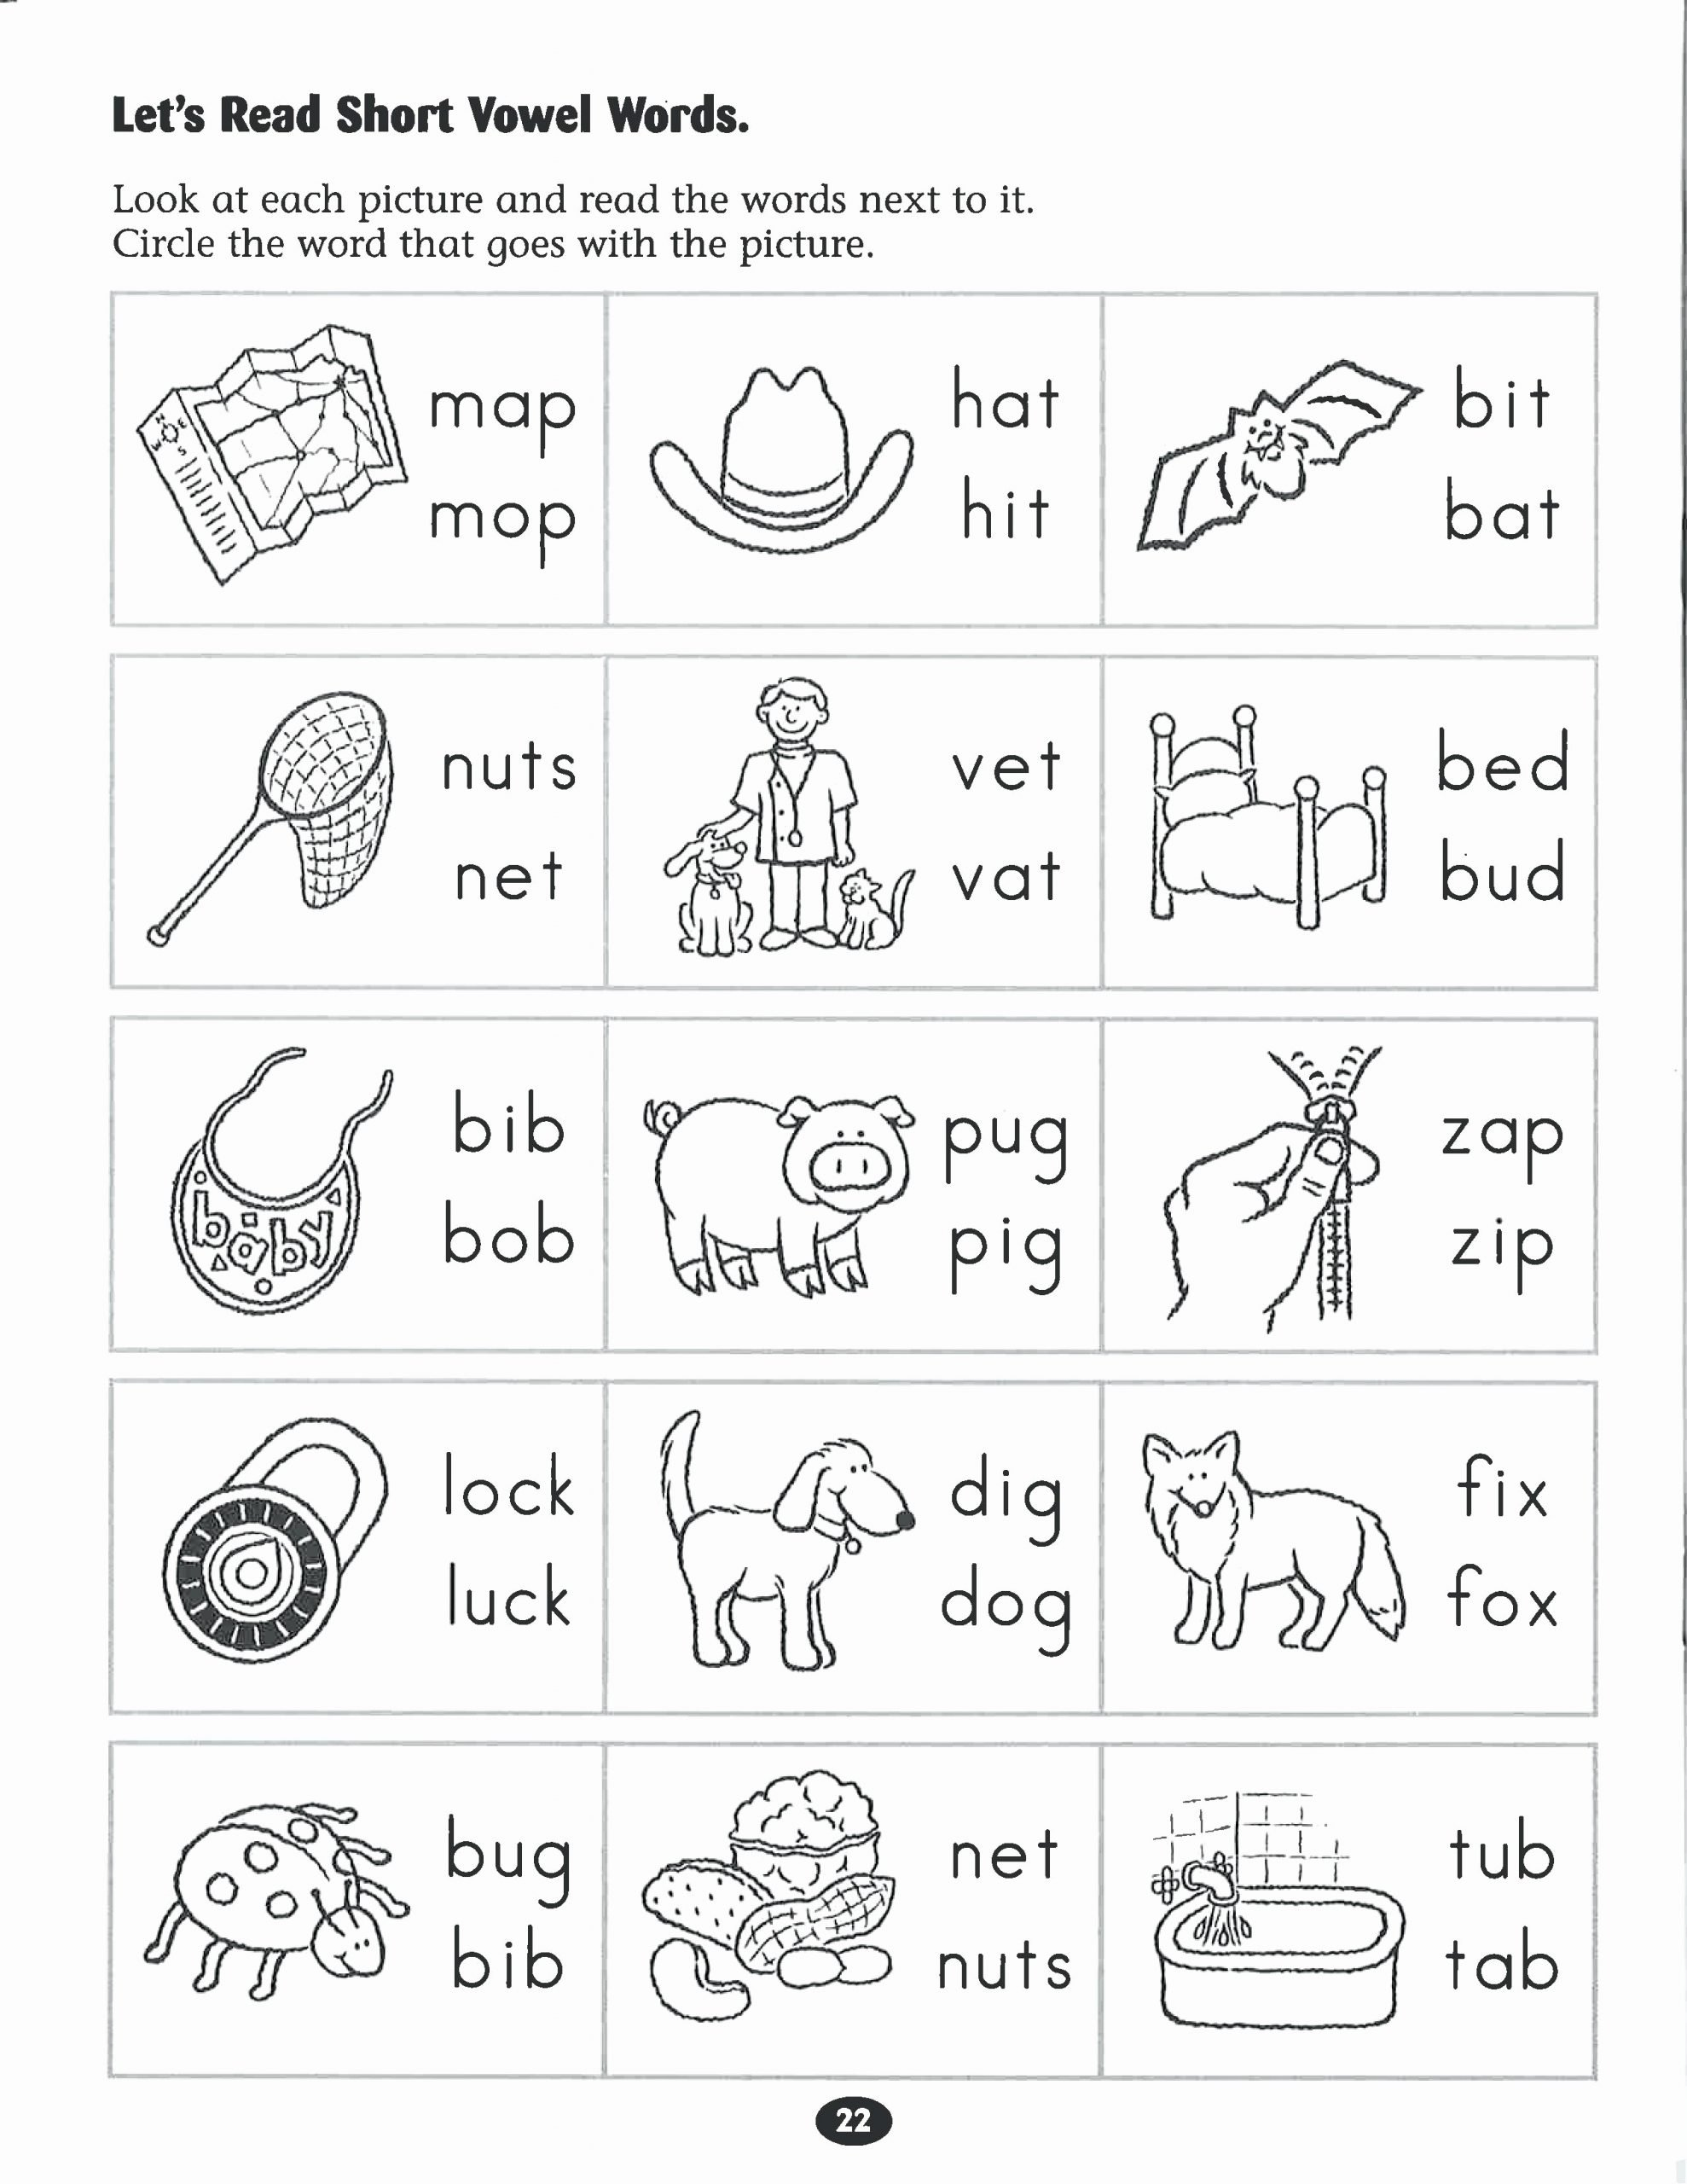 Jolly Phonics Worksheets for Preschoolers Inspirational Jolly Phonics Tensesa Worksheet